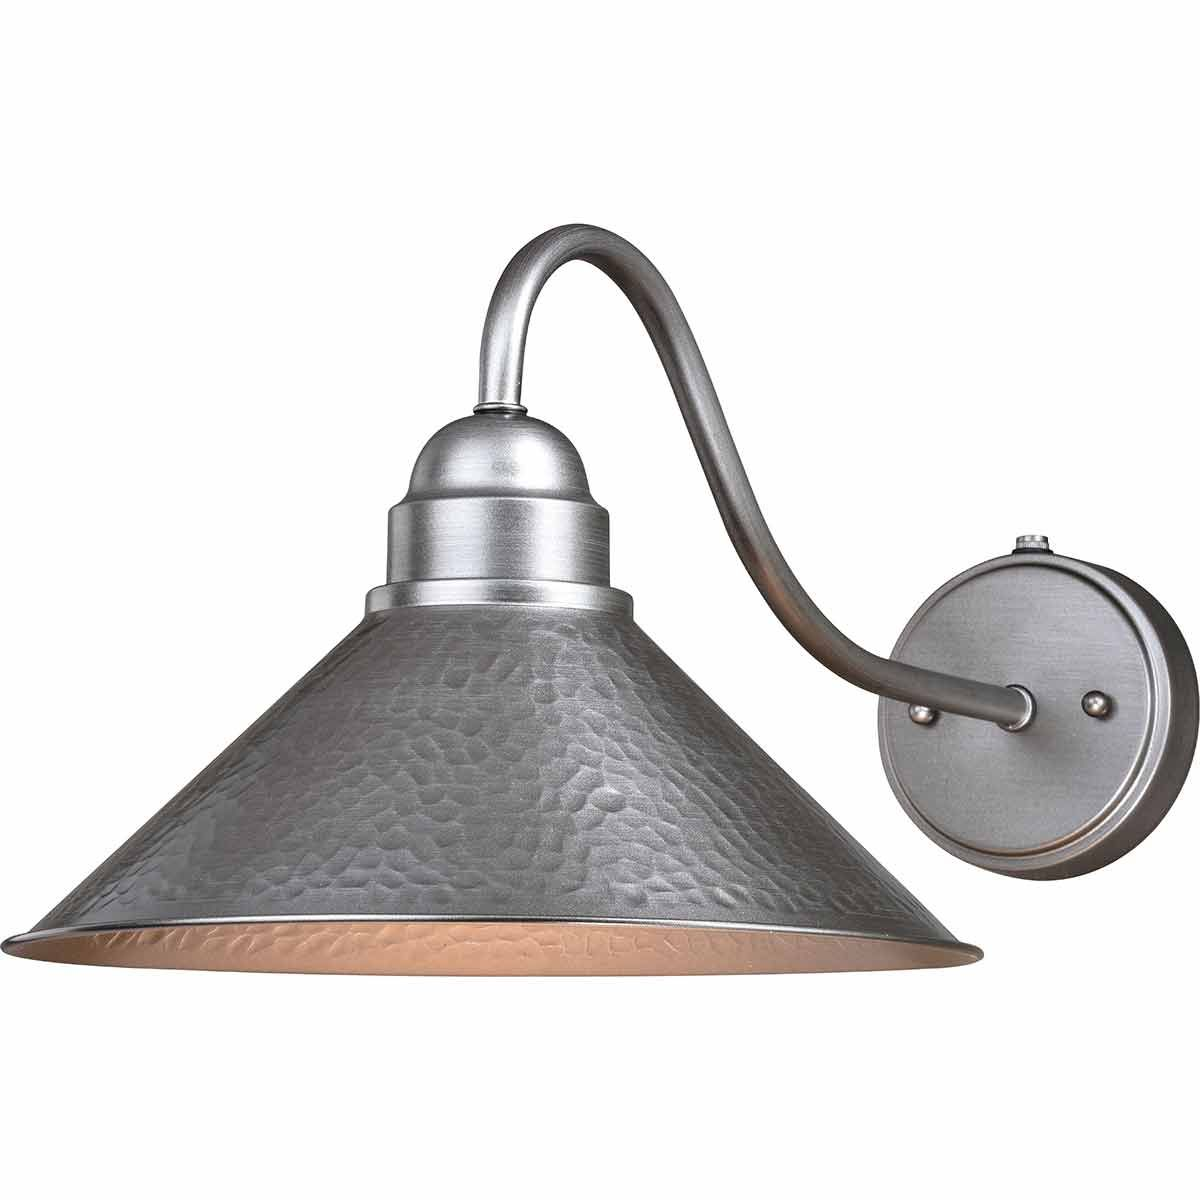 Trailhead Outdoor 12 Inch Wall Sconce with Long Arm - Pewter